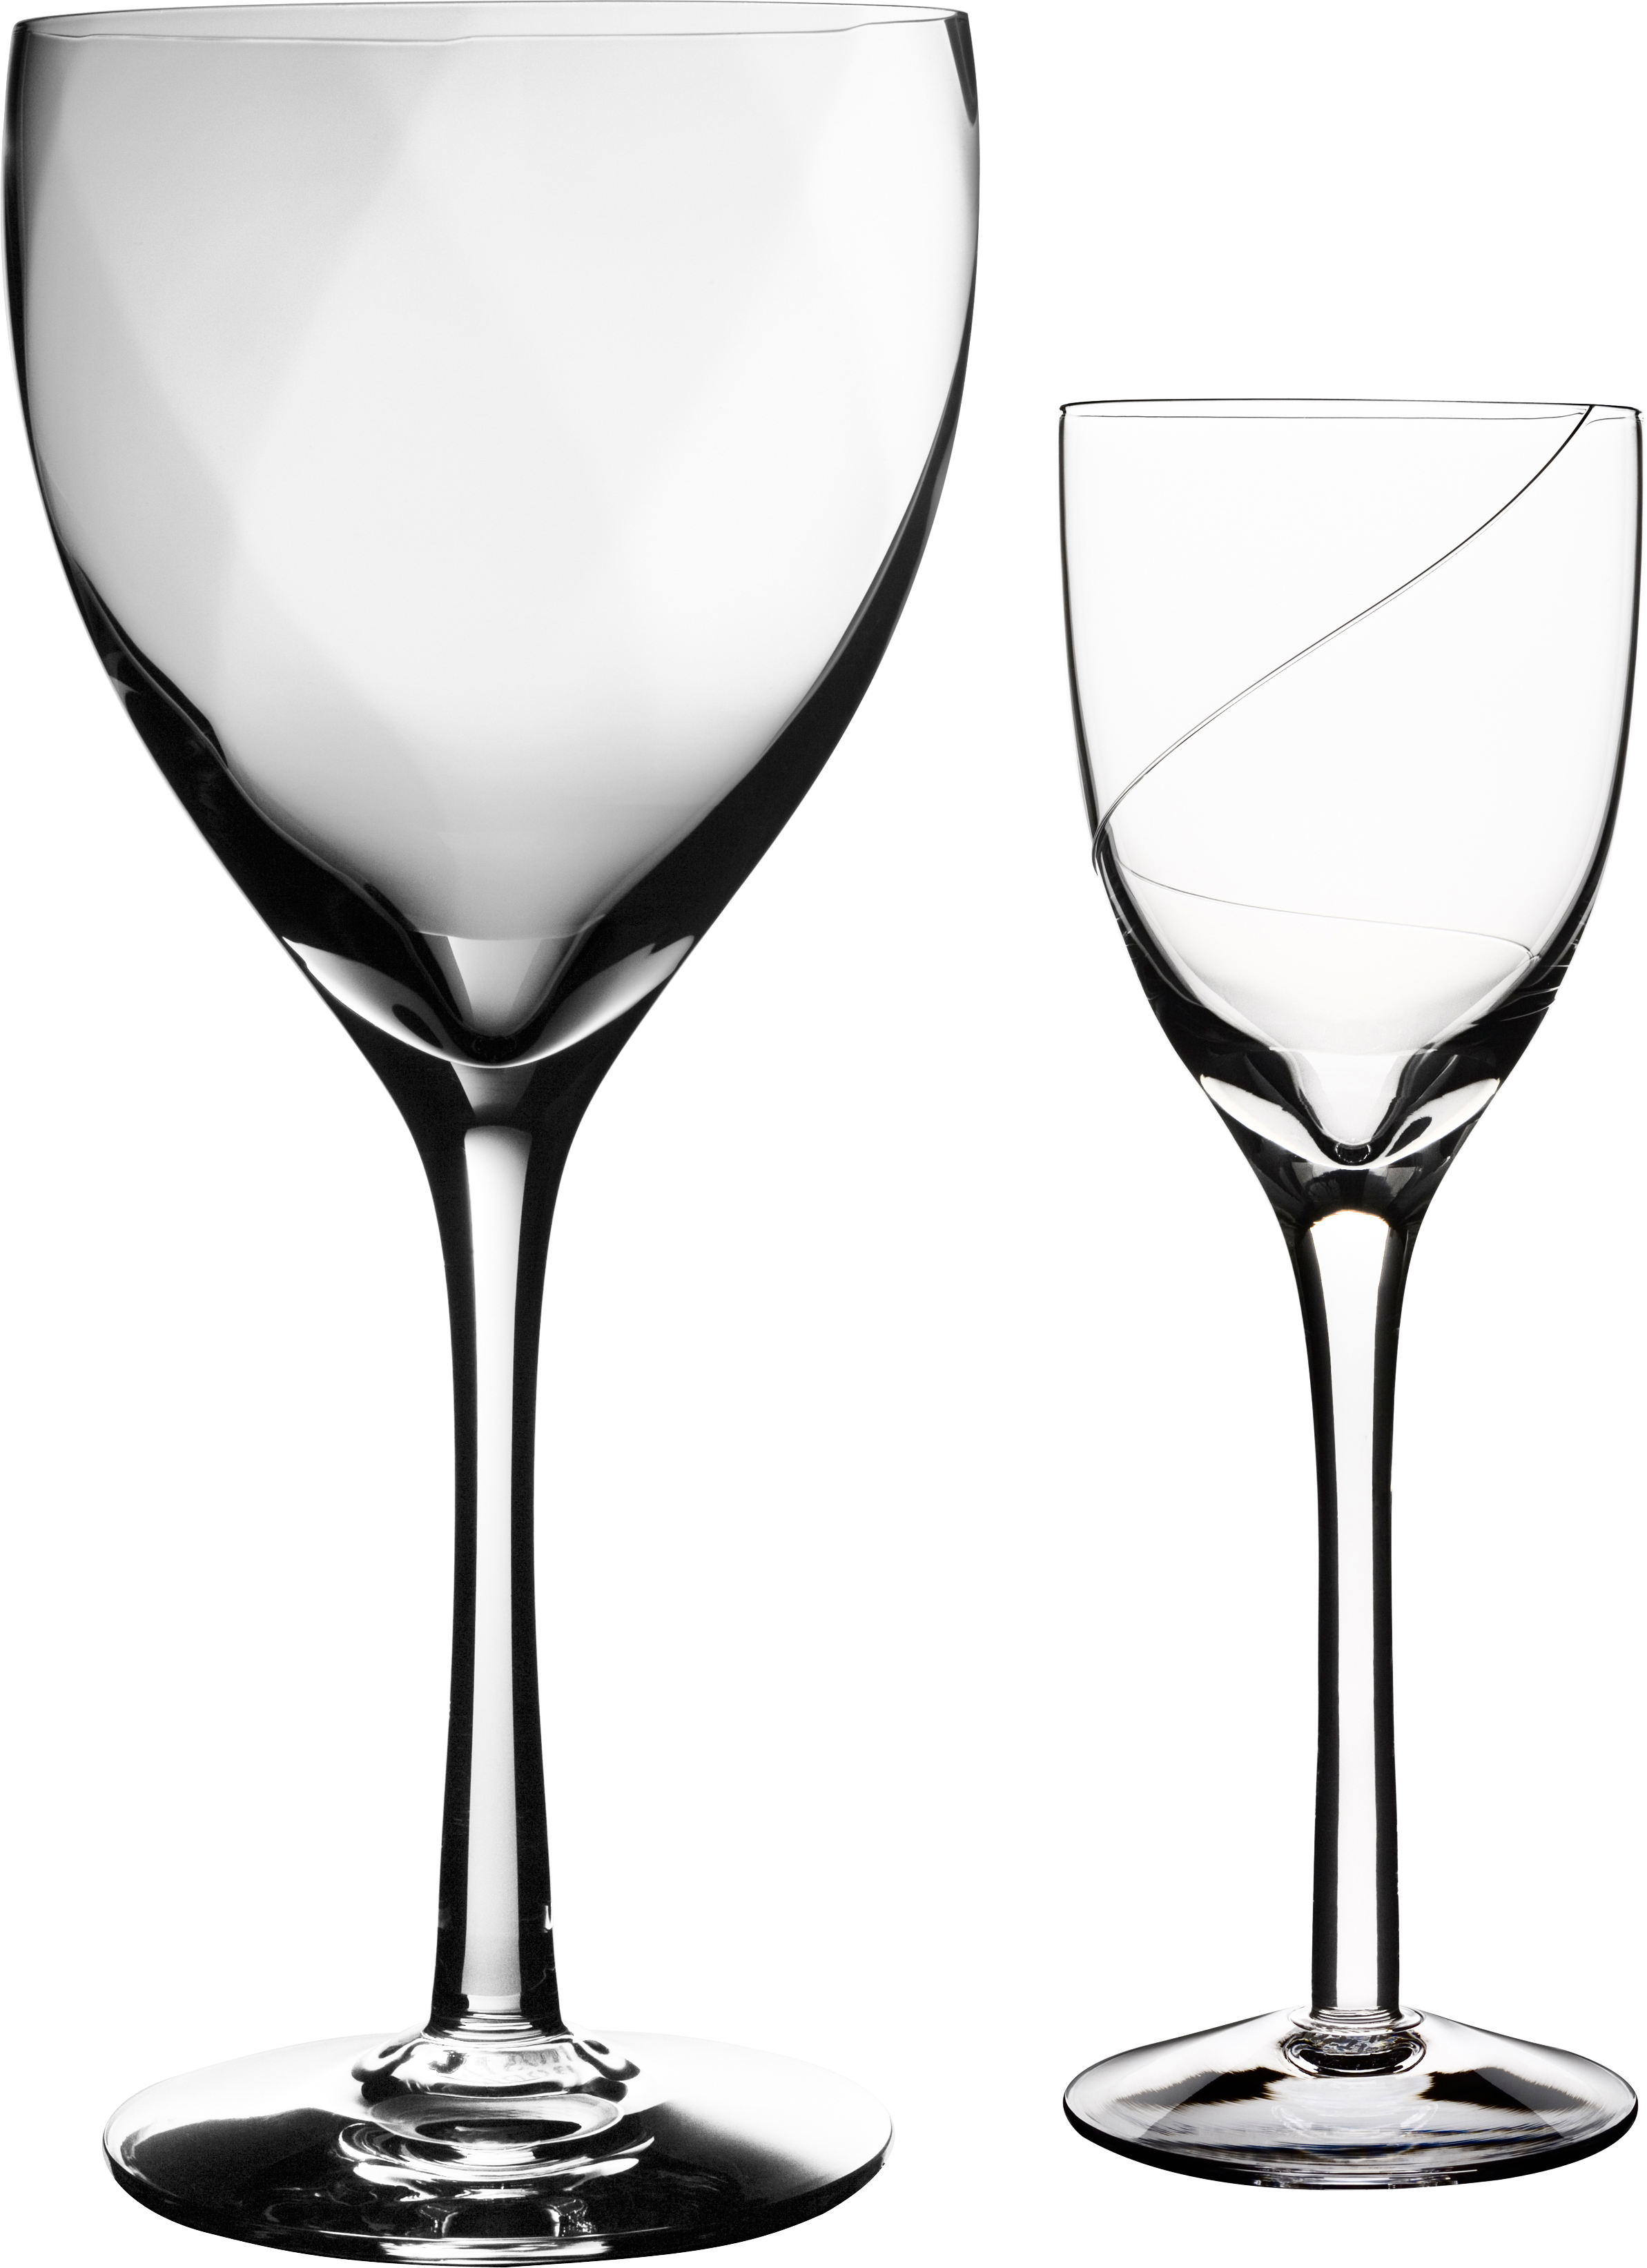 Empty wine glass four. Clipart kitchen crockery